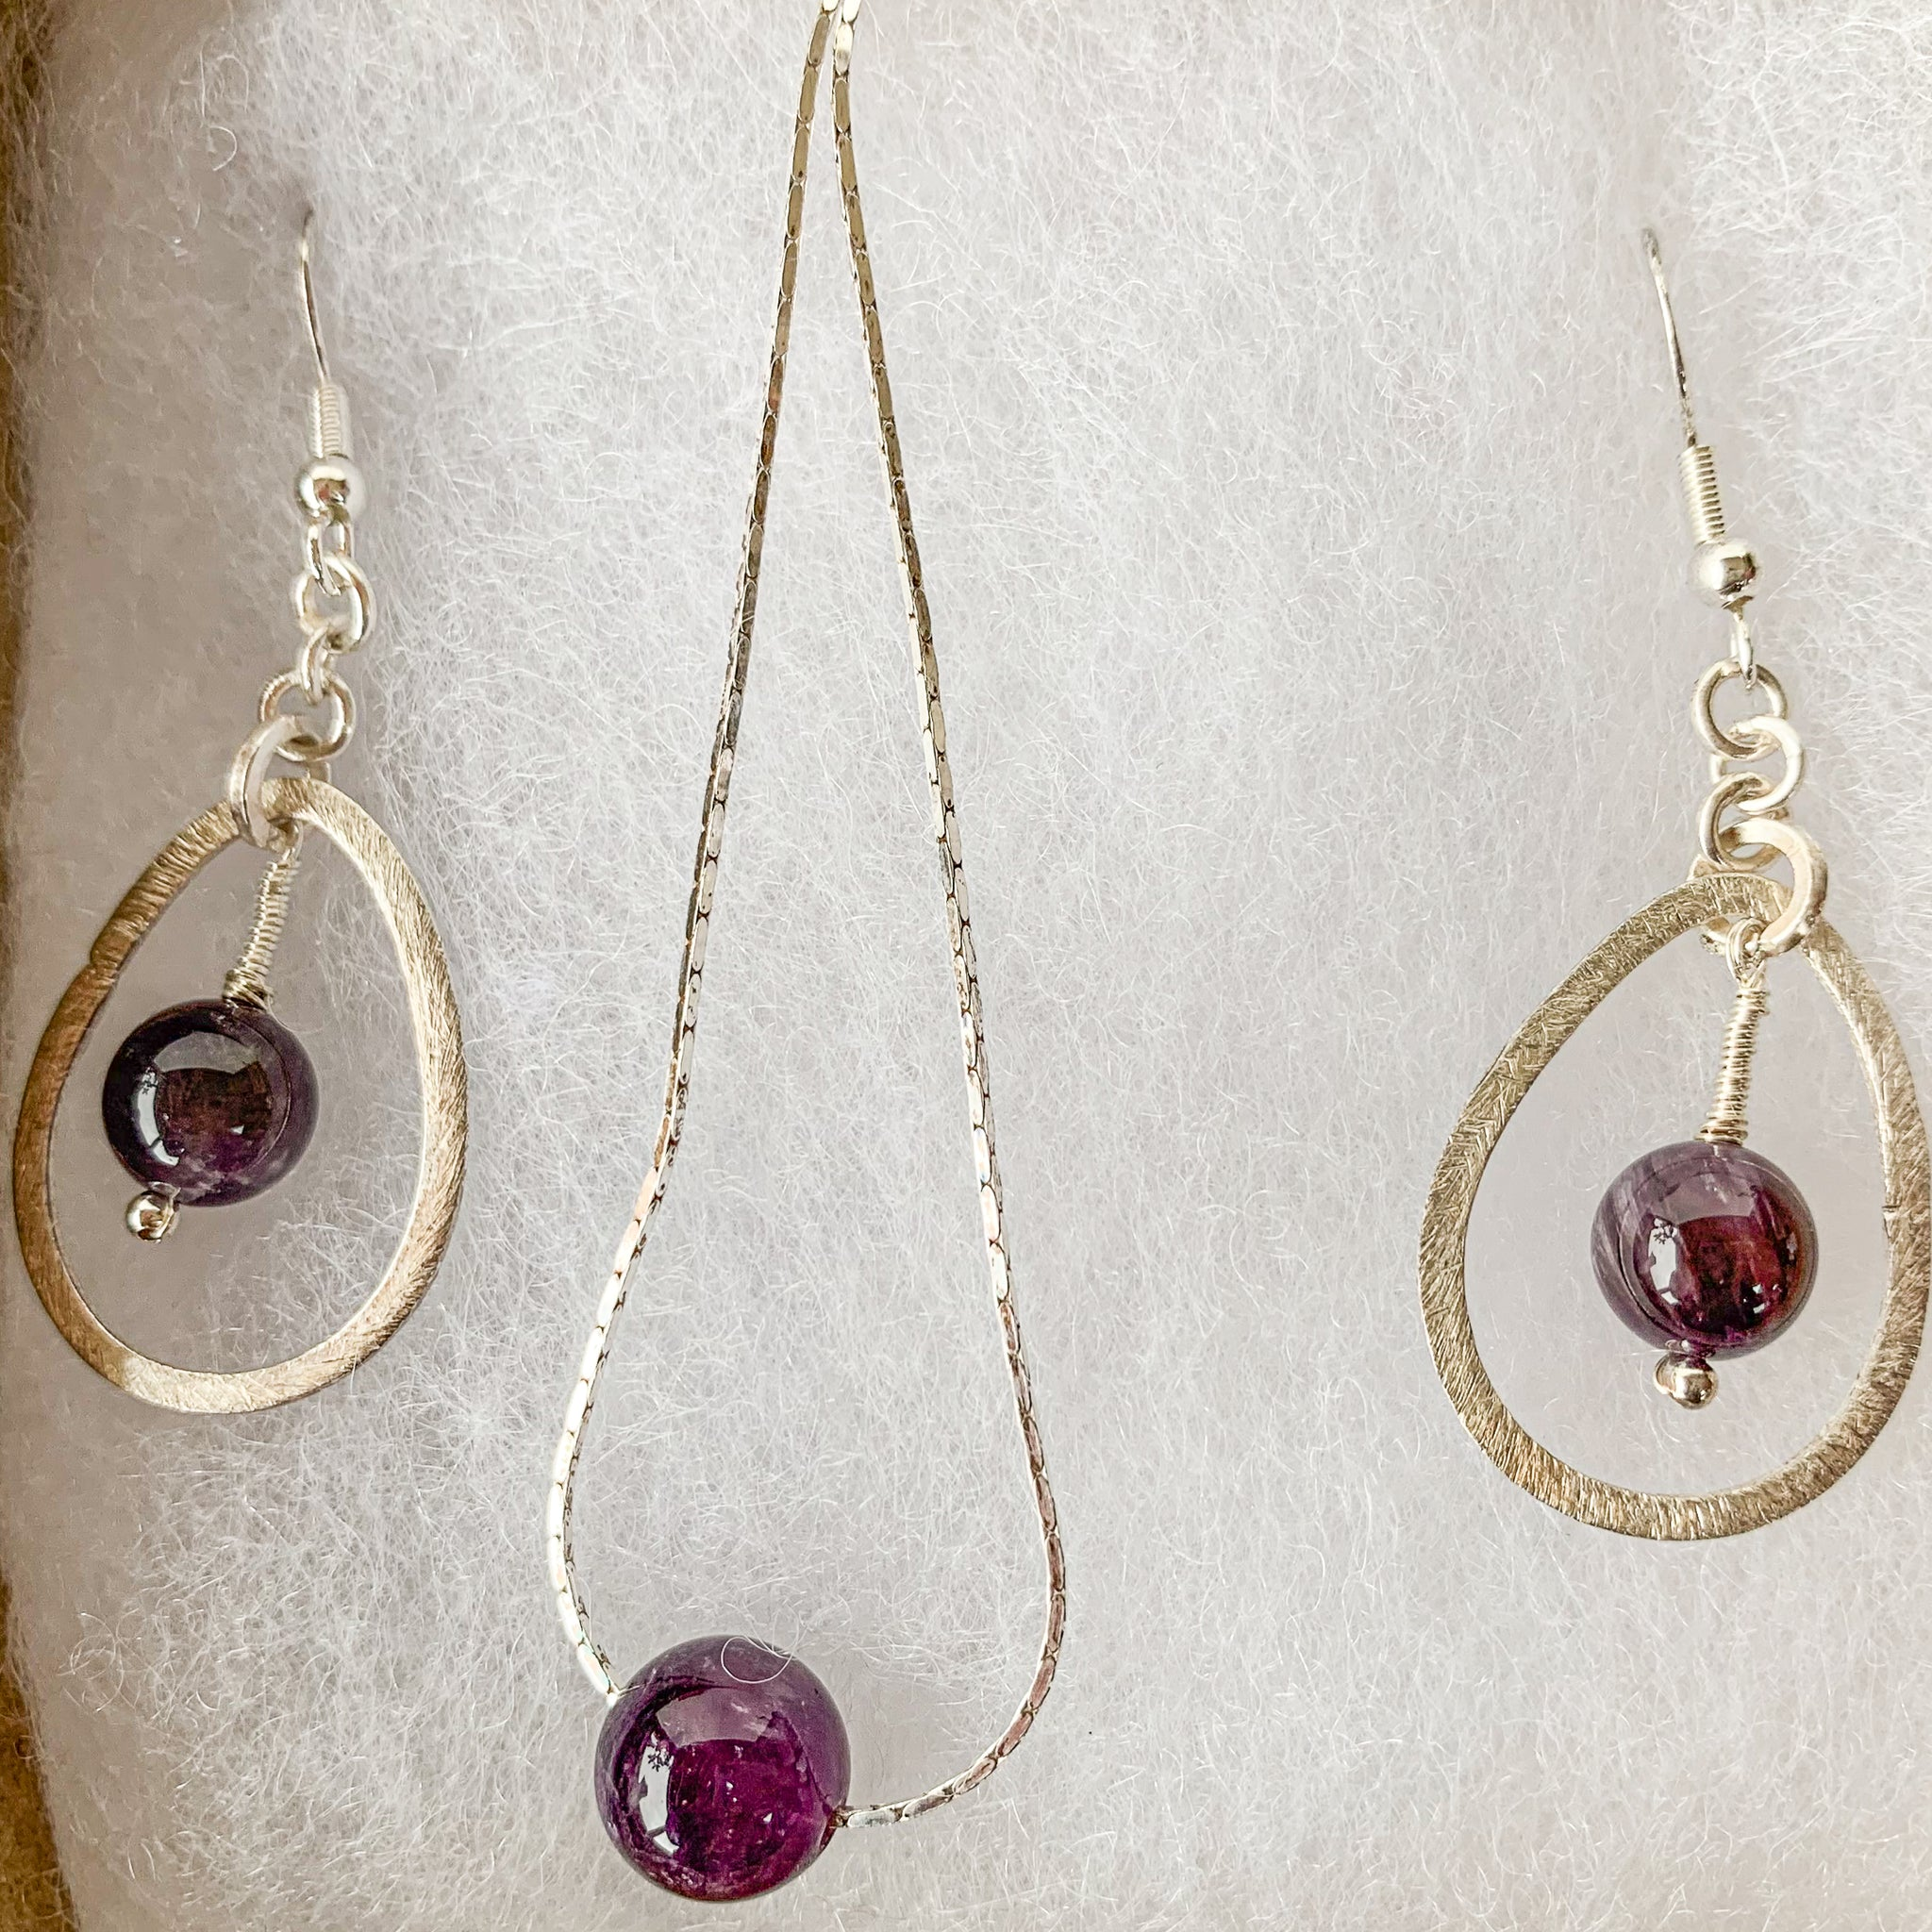 10mm amethyst beads pendant & earrings on 925 sterling silver